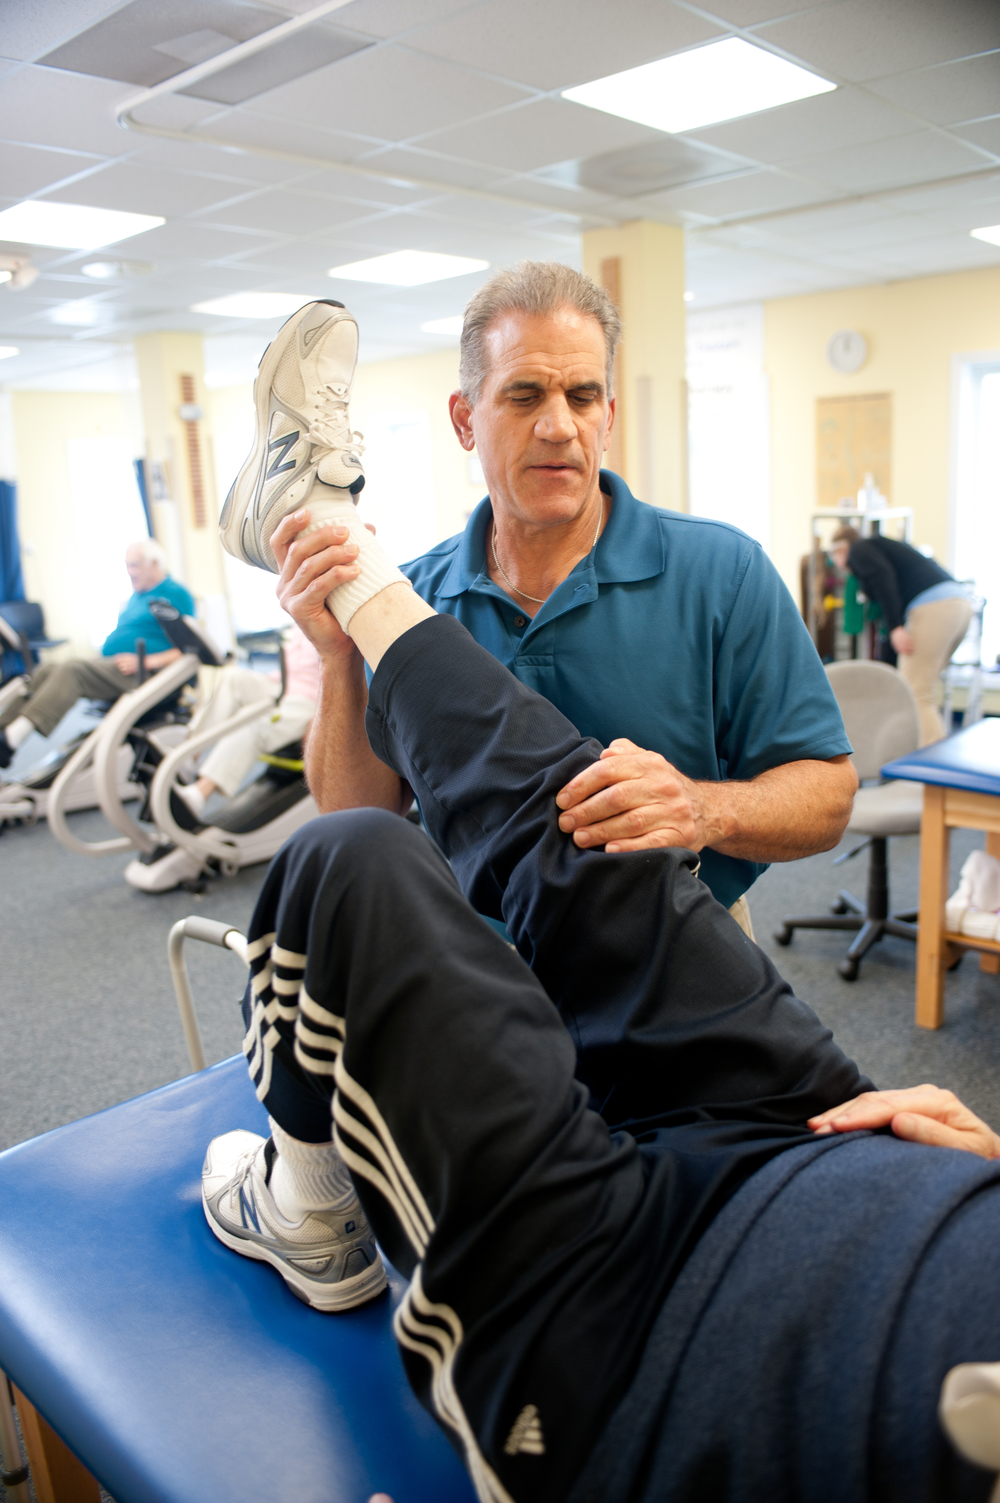 Article on physical therapy - Article Written By Clinical Director Senior Physical Therapist At Tidewater Physical Therapy Ocean View